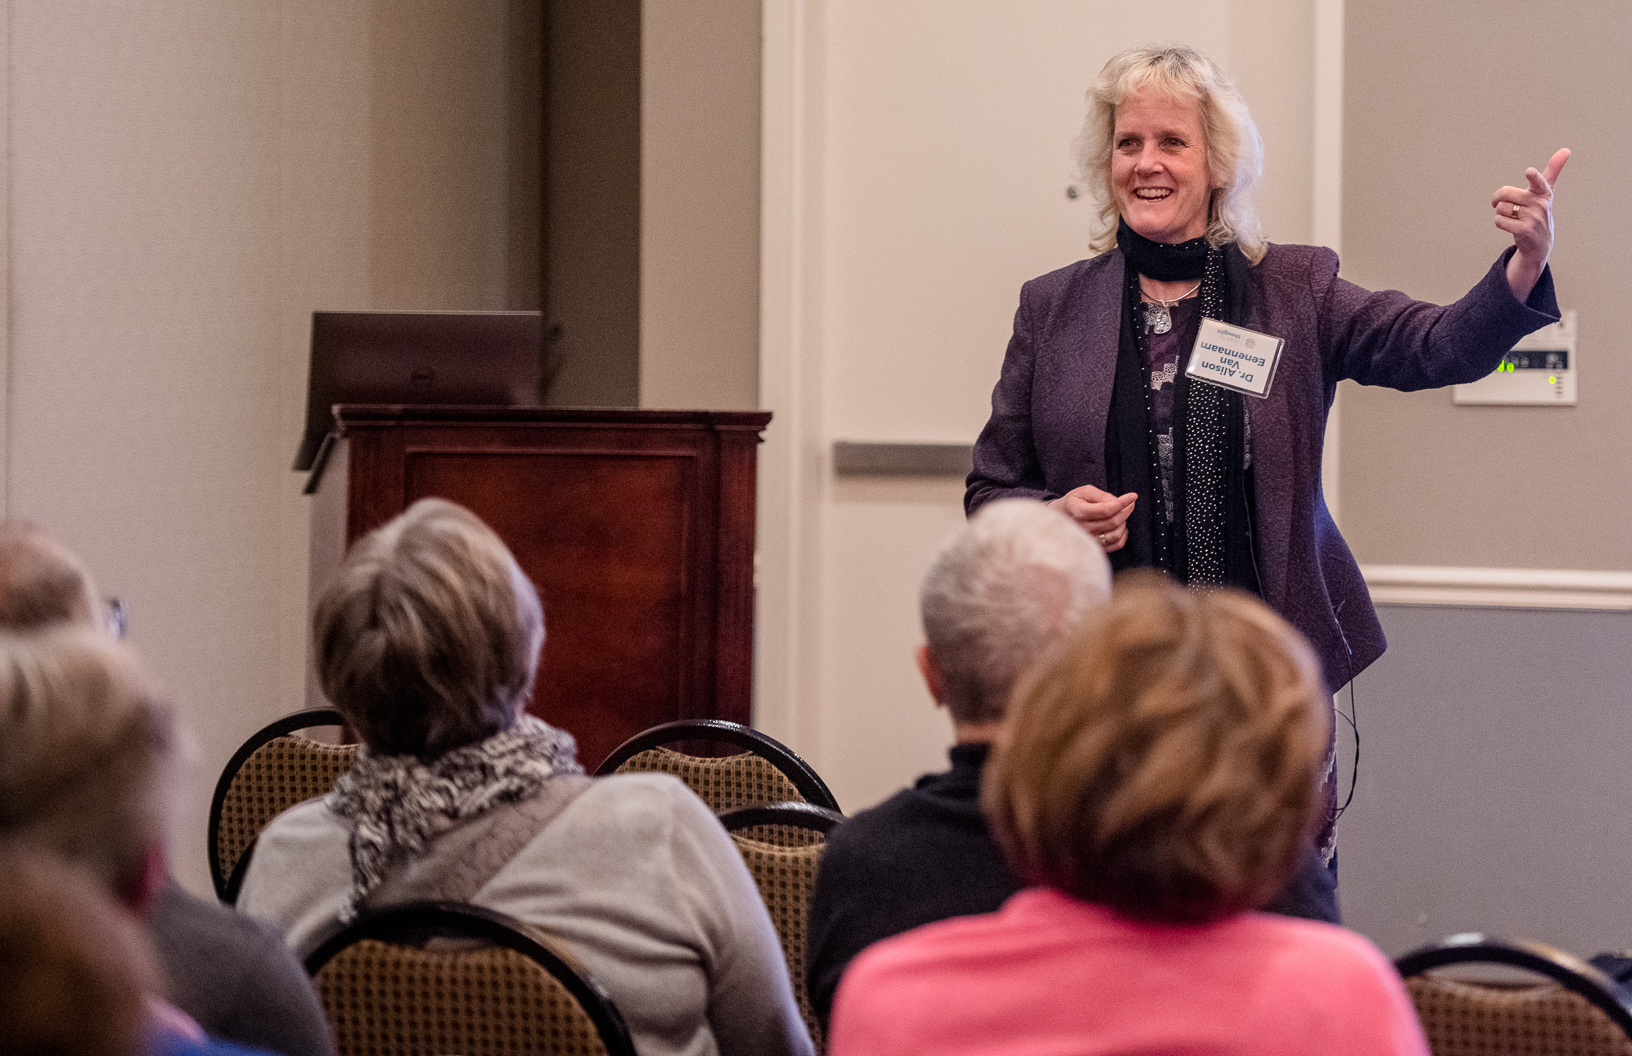 Alison Van Eenennaam, Ph.D., animal geneticist and extension specialist at University of California at Davis, addressed how misinformation in agriculture can impact sustainability and innovation. Photo credit: Joseph L. Murphy/Iowa Soybean Association